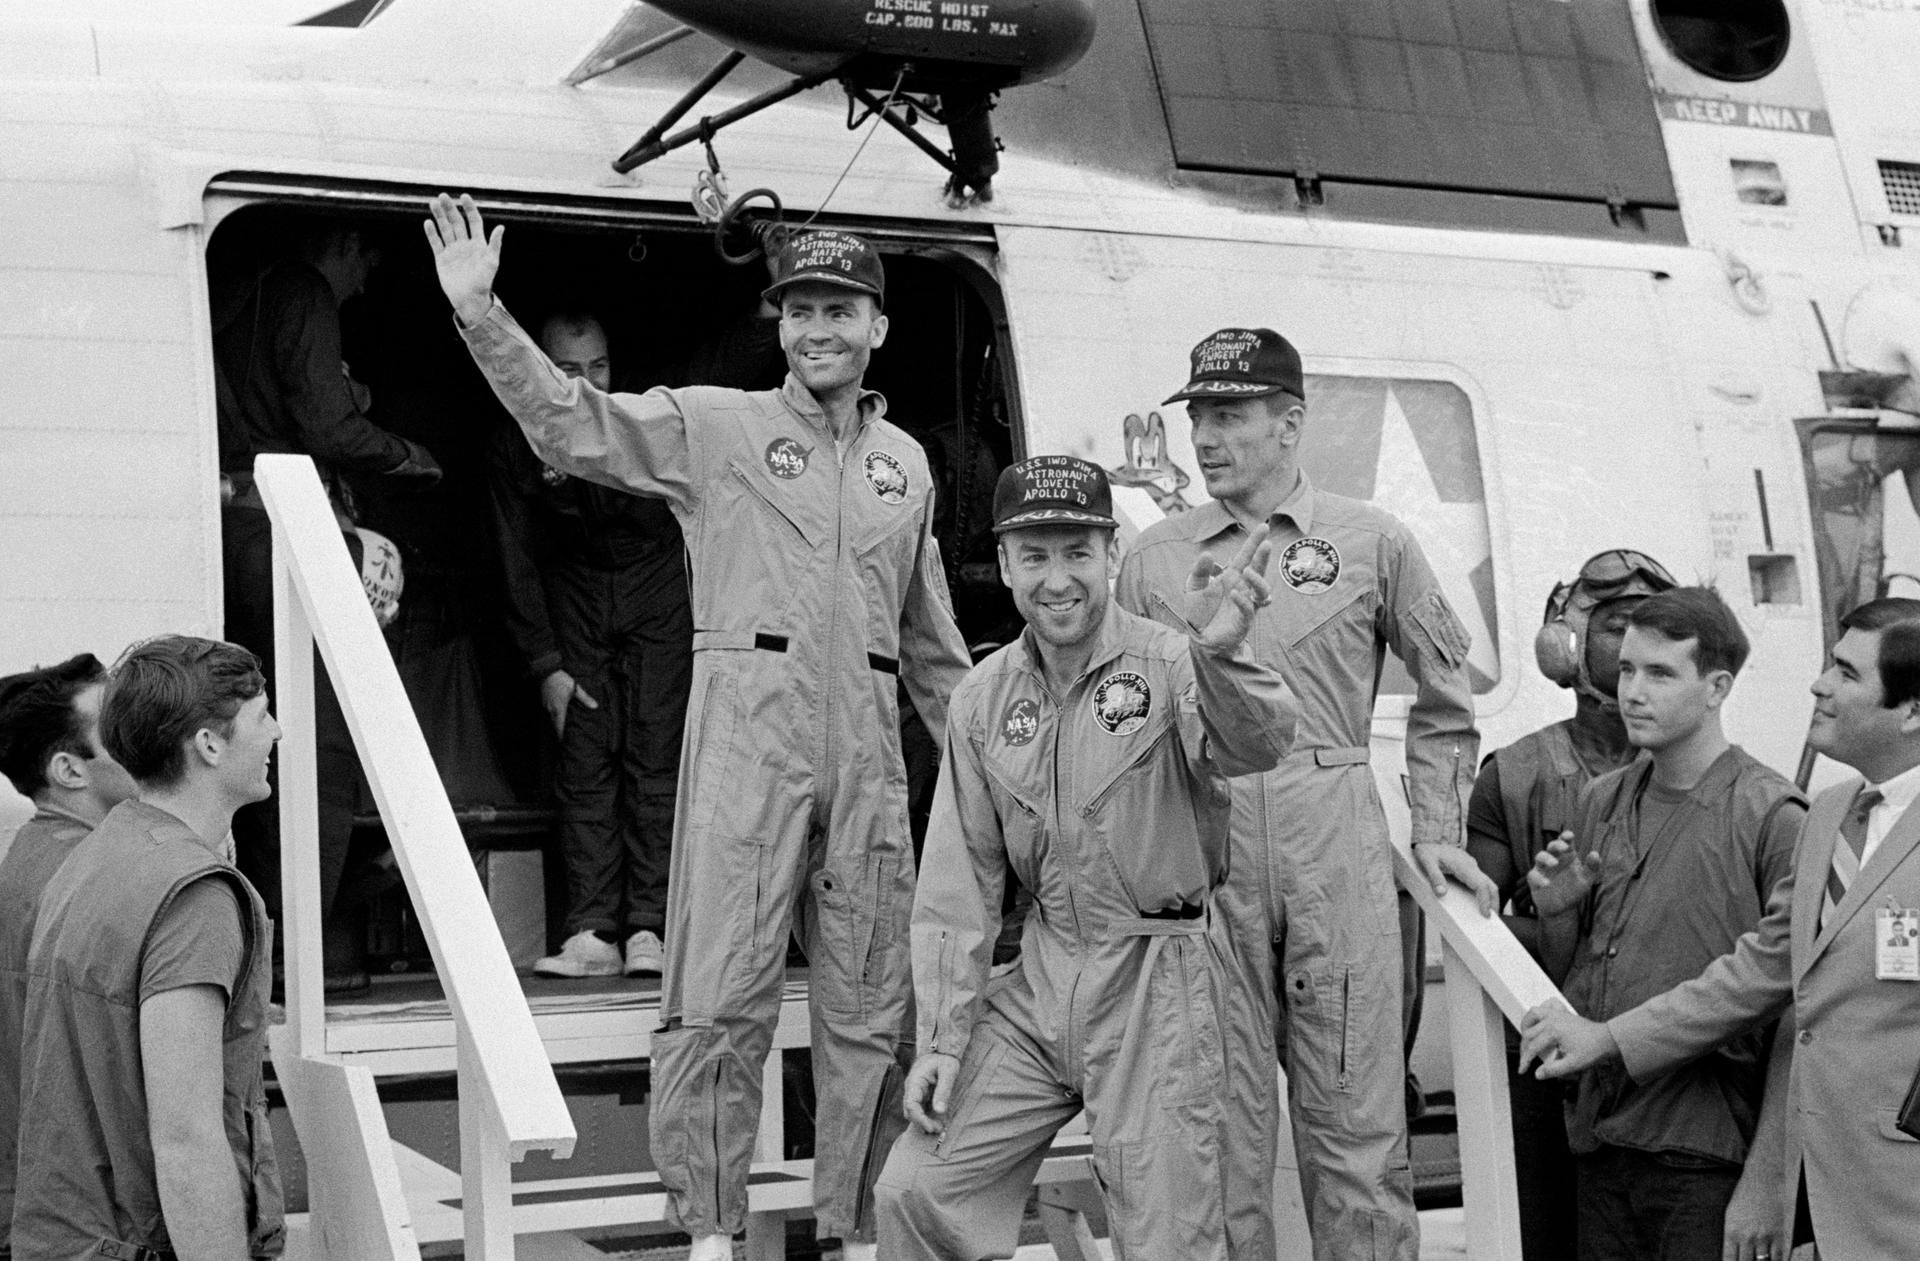 Apollo 13 Facts: The Historic Mission That Never Made It ...